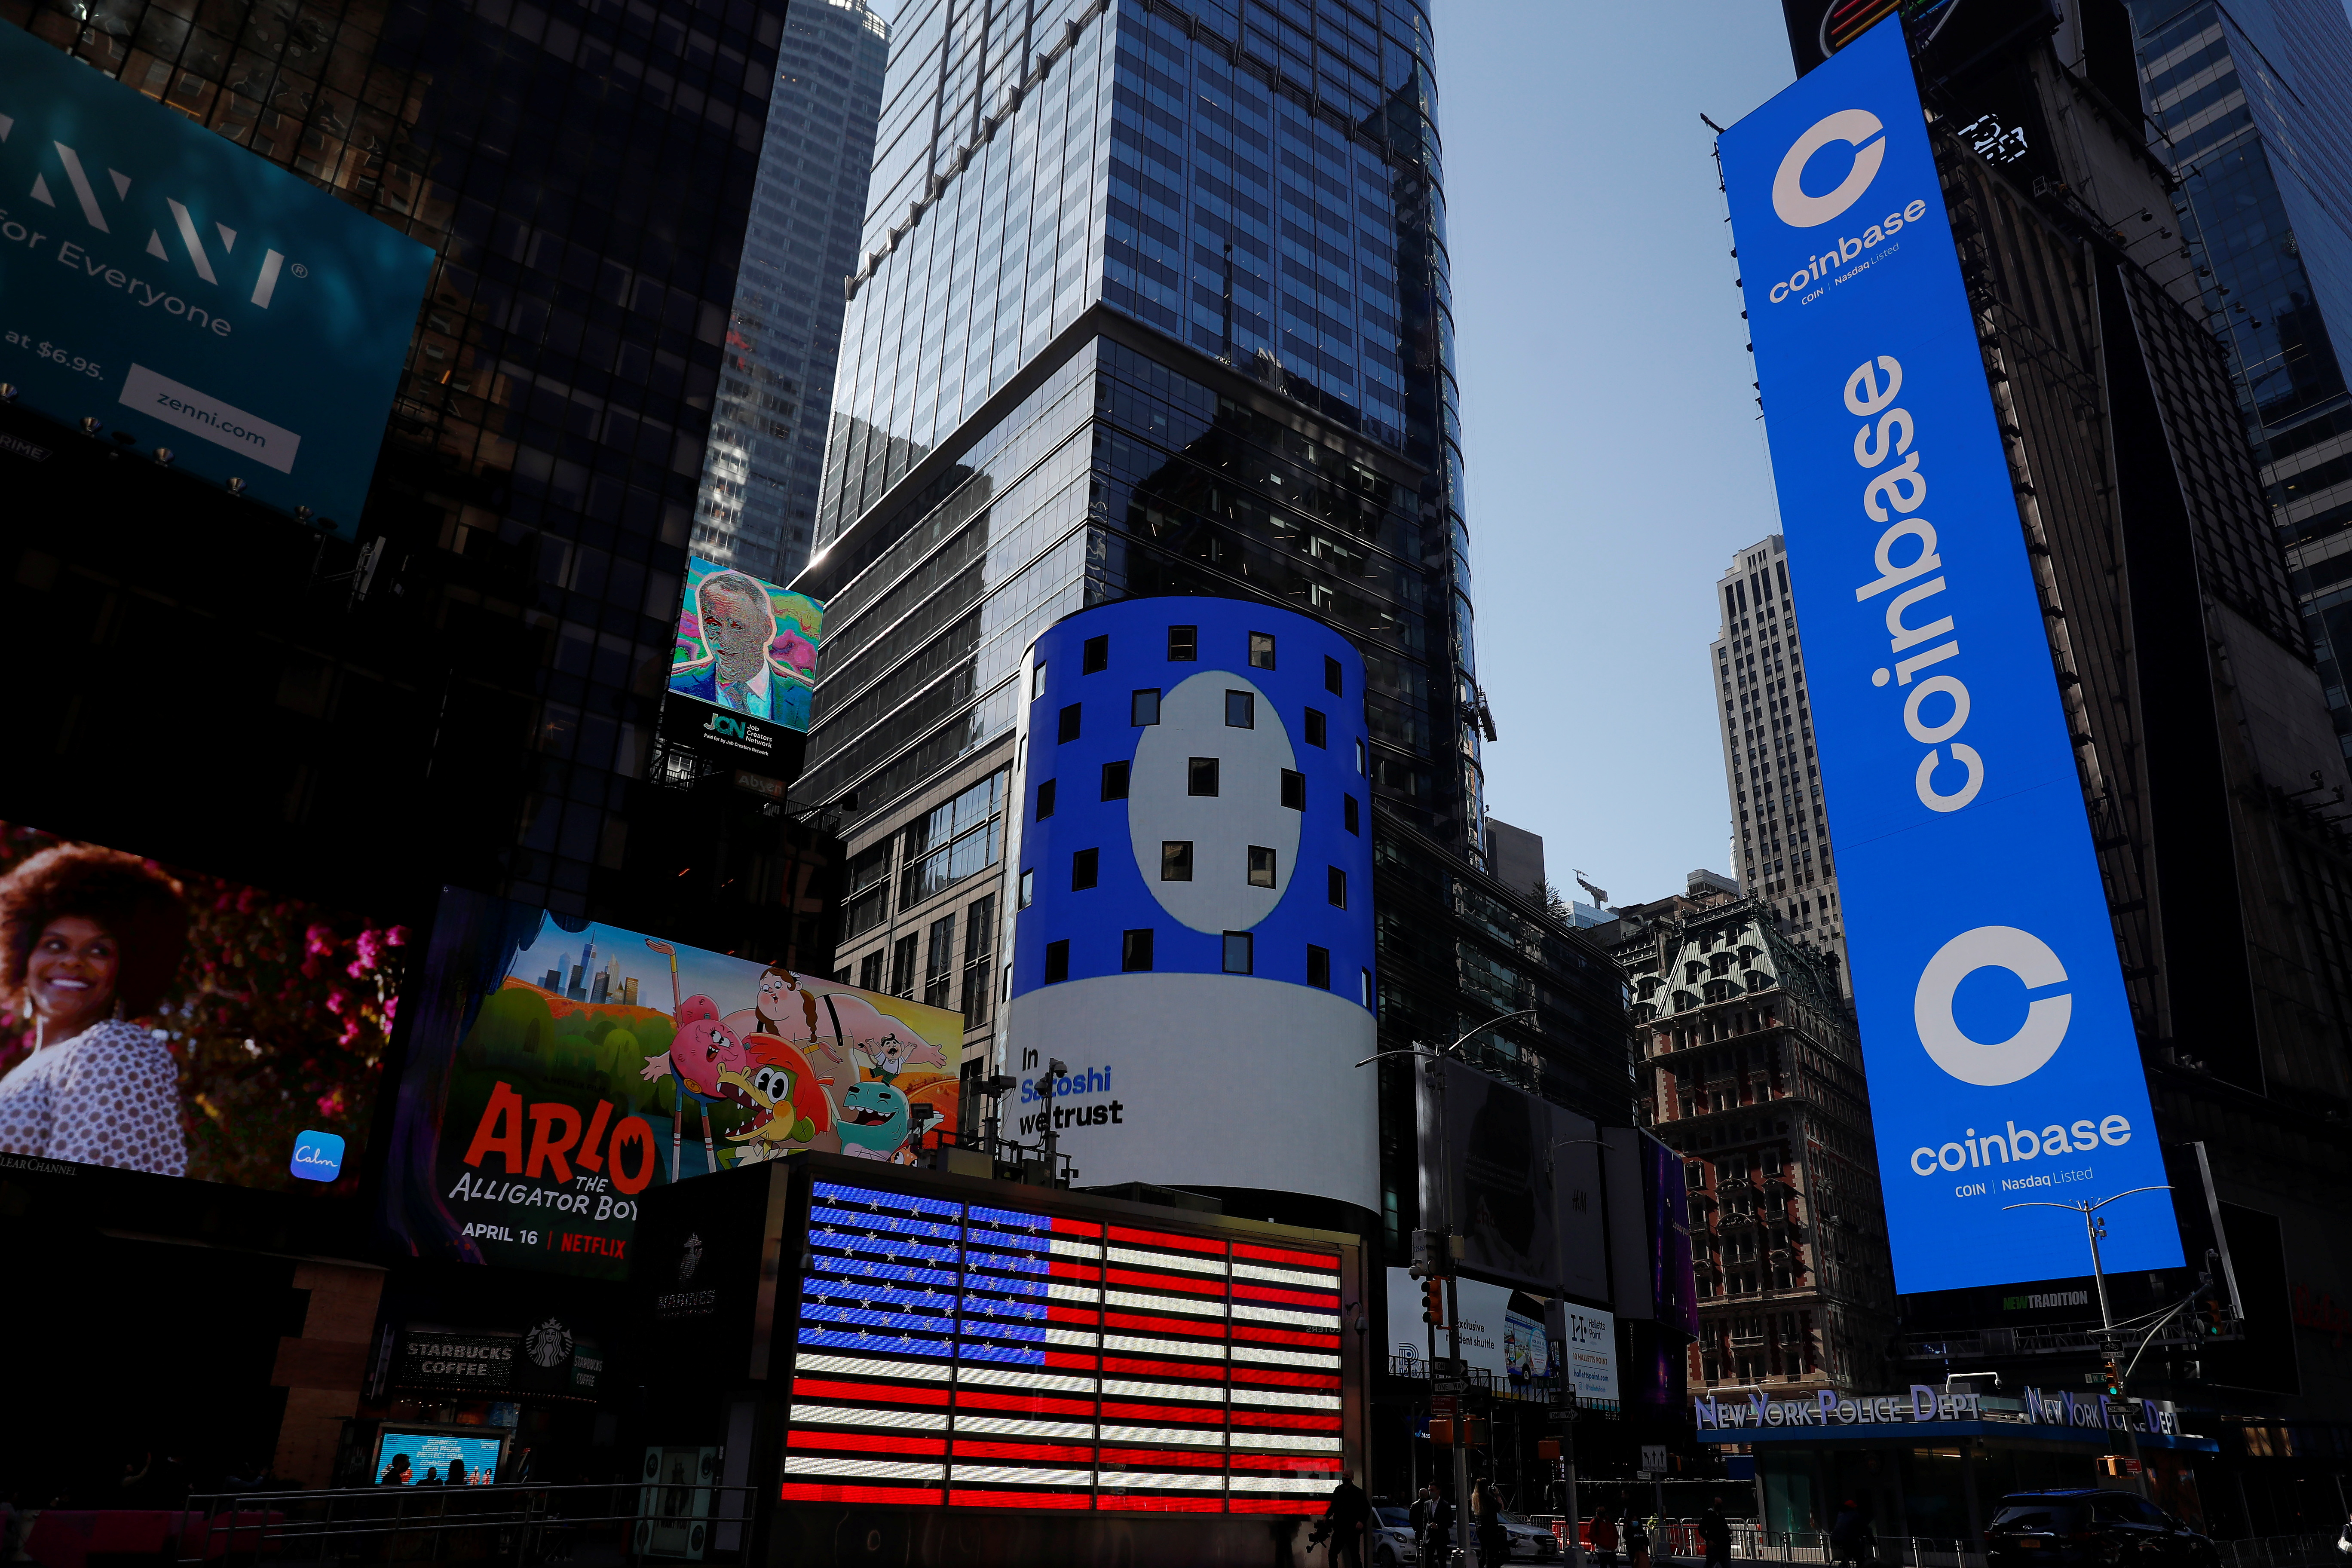 File photo: The logo for Coinbase Global Inc, the biggest U.S. cryptocurrency exchange, is displayed on the Nasdaq MarketSite jumbotron and others at Times Square in New York, U.S., April 14, 2021. REUTERS/Shannon Stapleton.